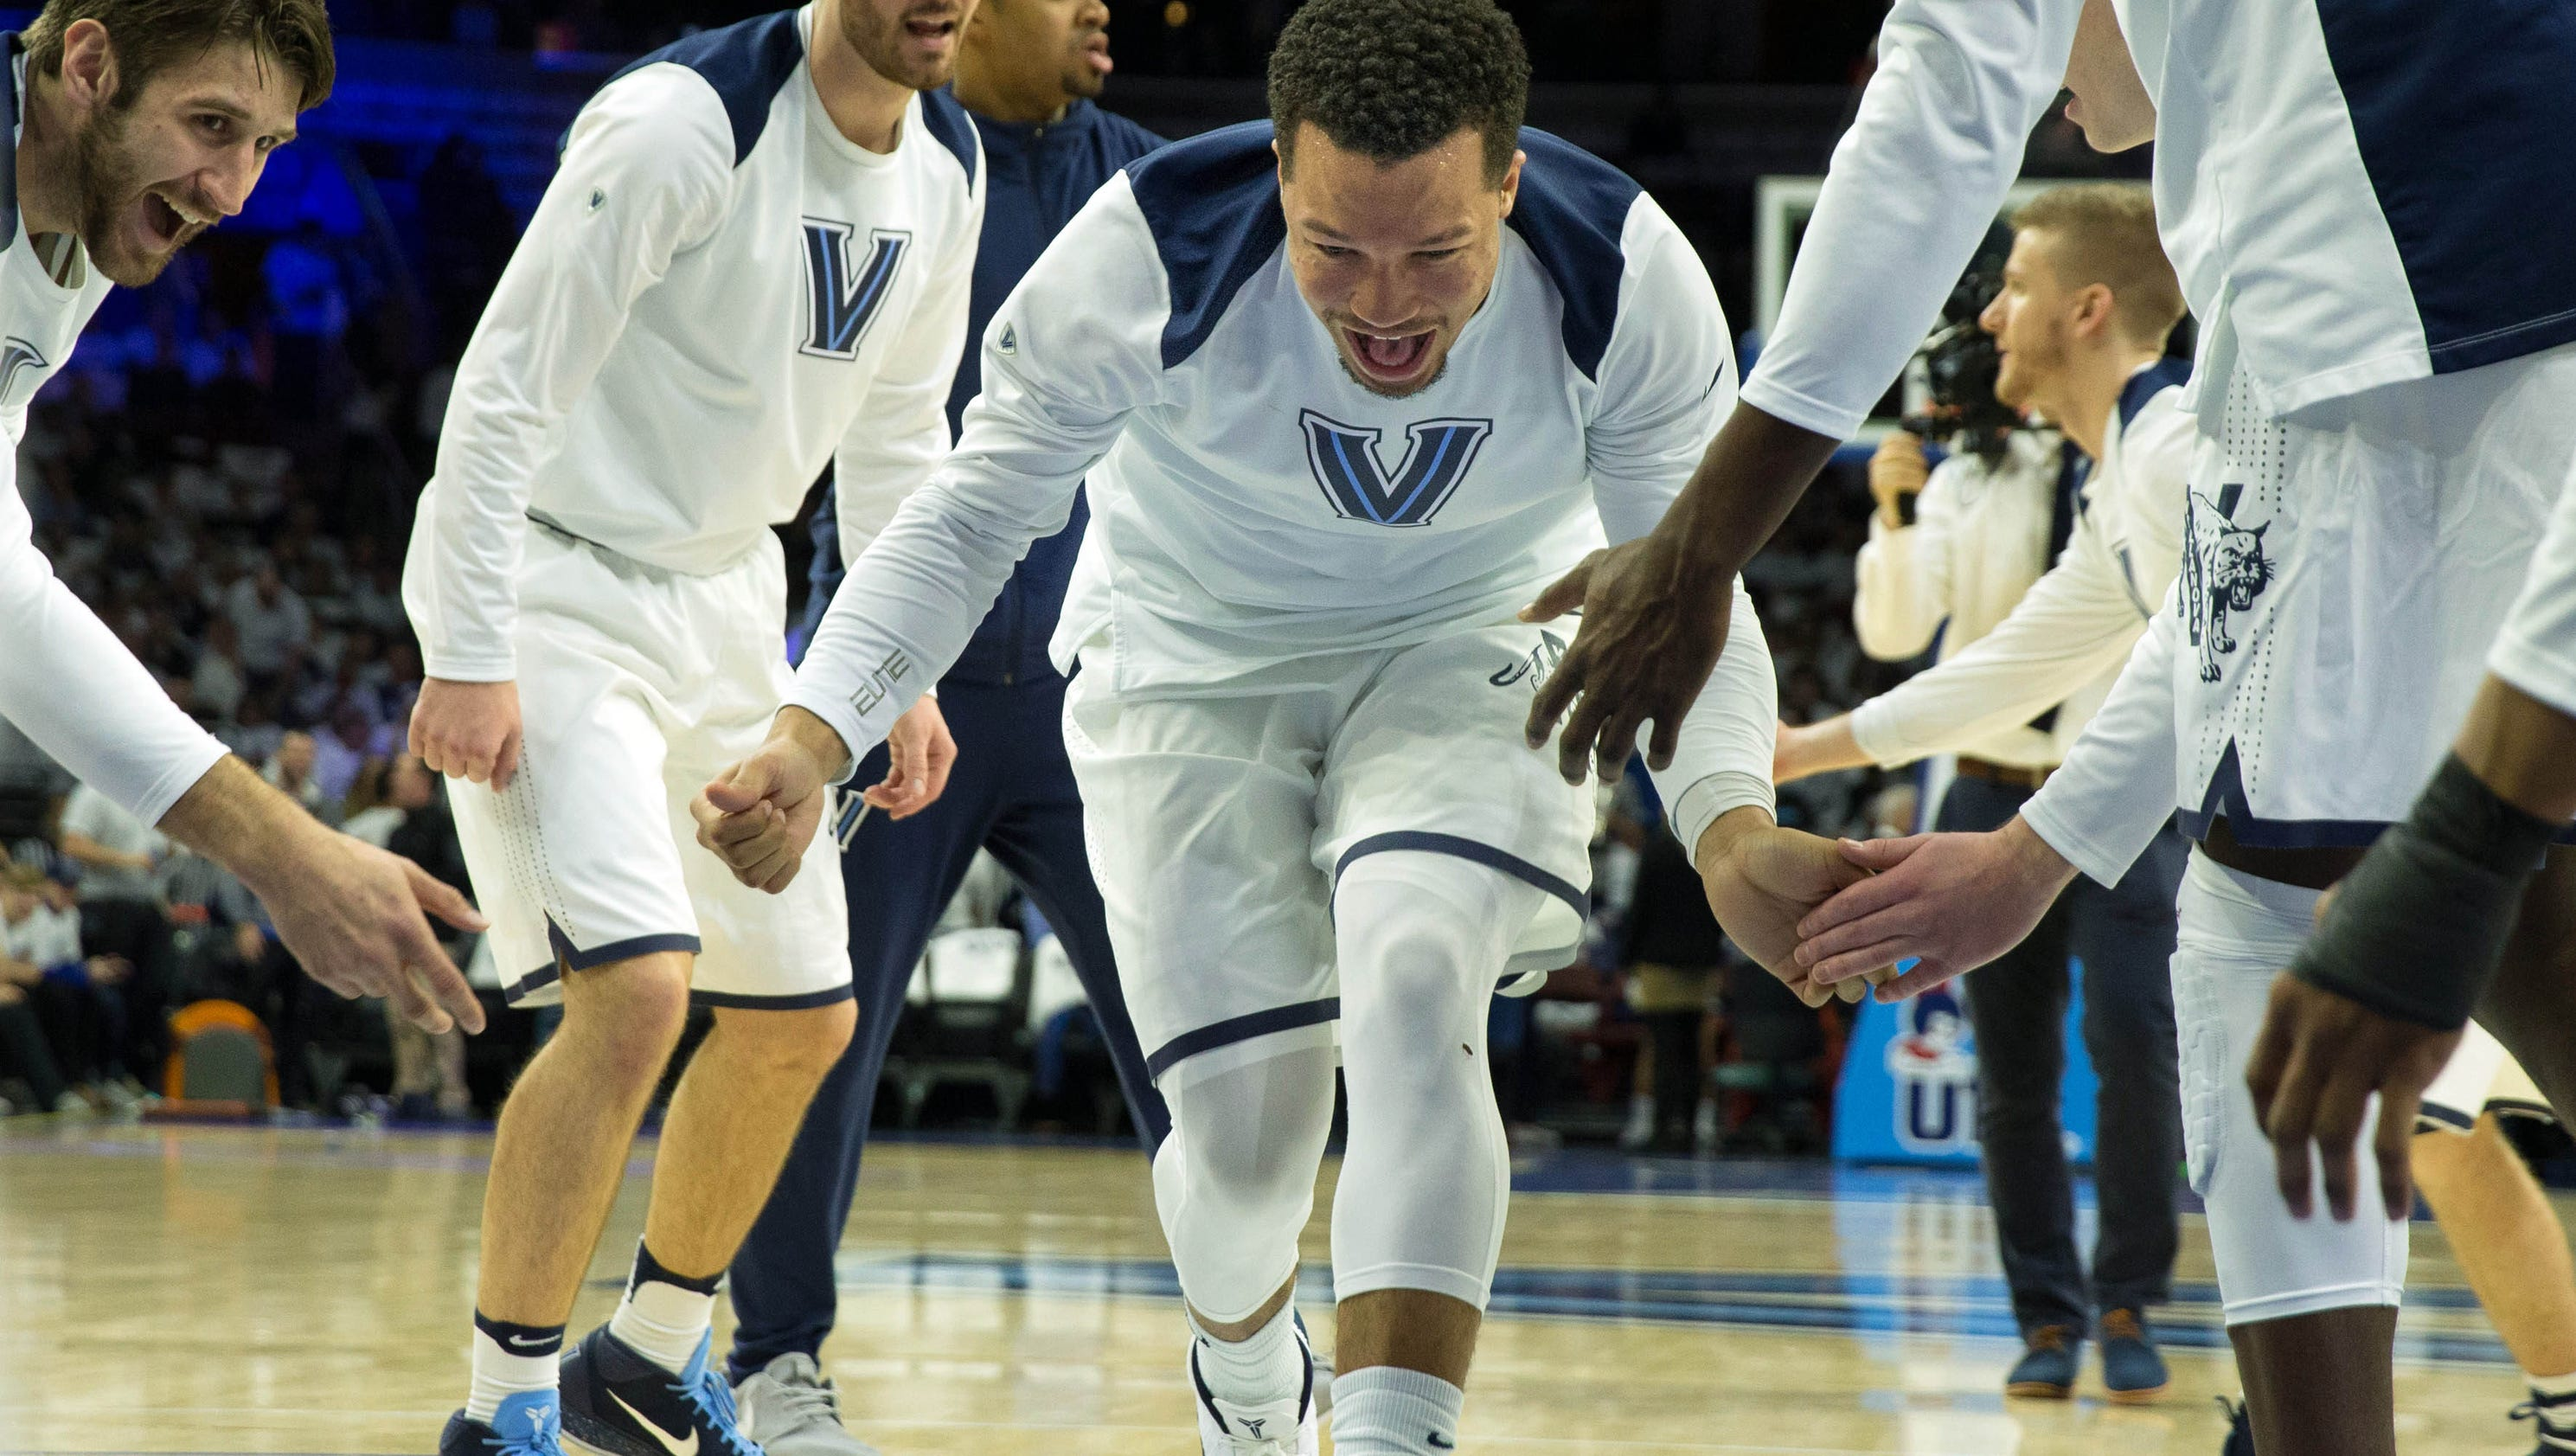 636590334652485049-usp-ncaa-basketball-butler-at-villanova-97314756